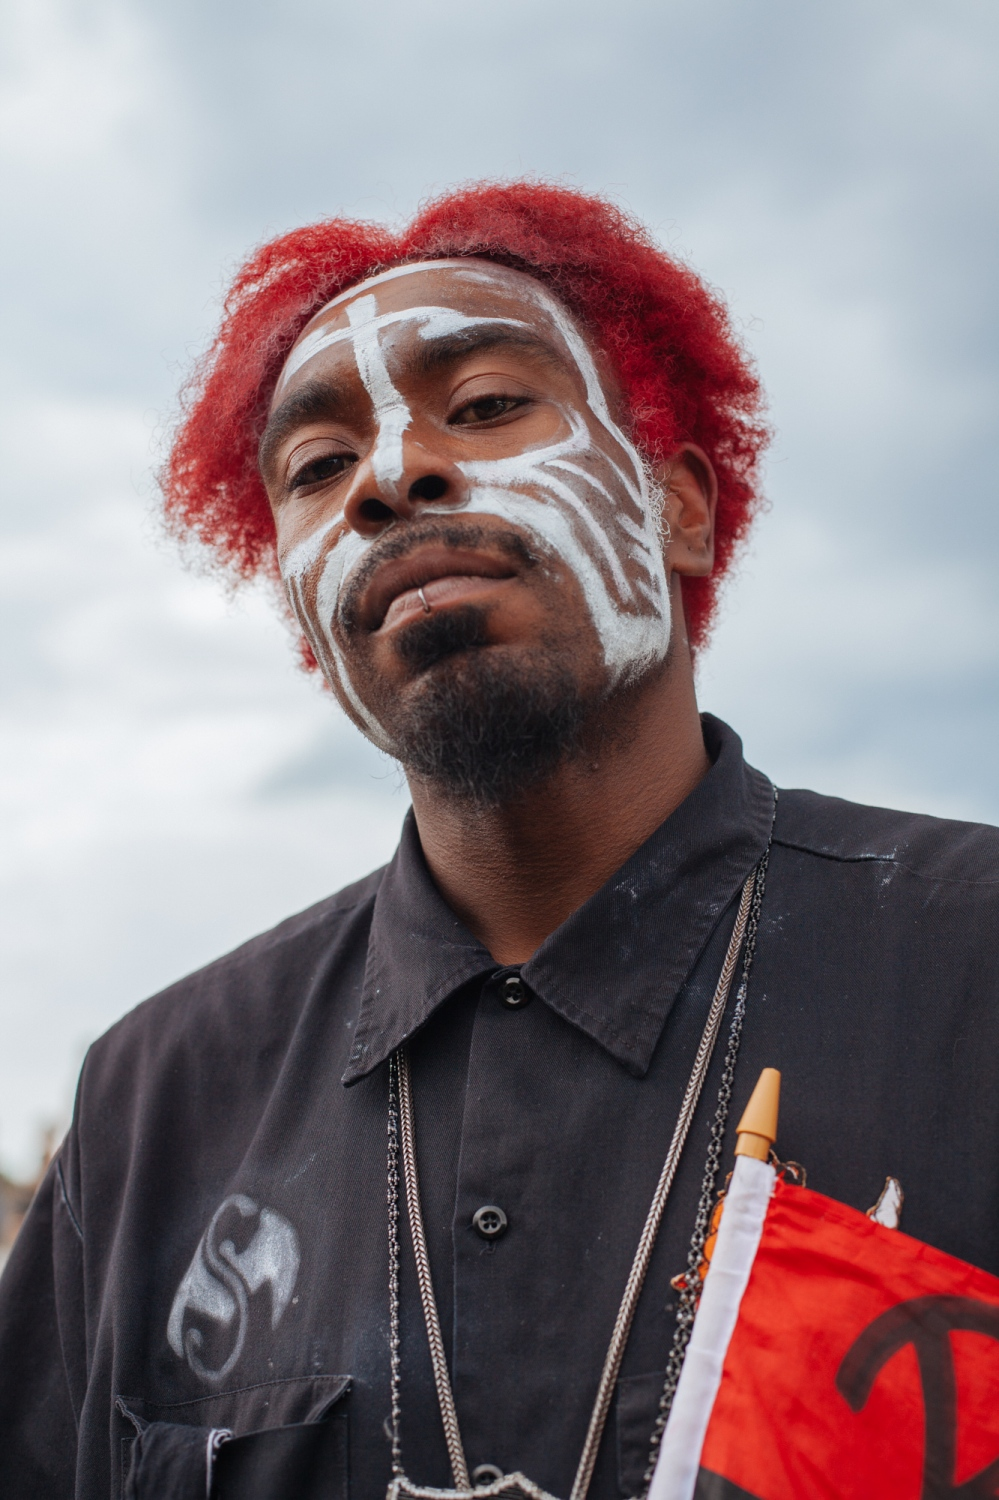 Rich, an Oakland, Californian local and Juggalo, stands tall during the Juggalo March Juggalo March at the National Mall, Washington, D.C., U.S. September 16, 2017.